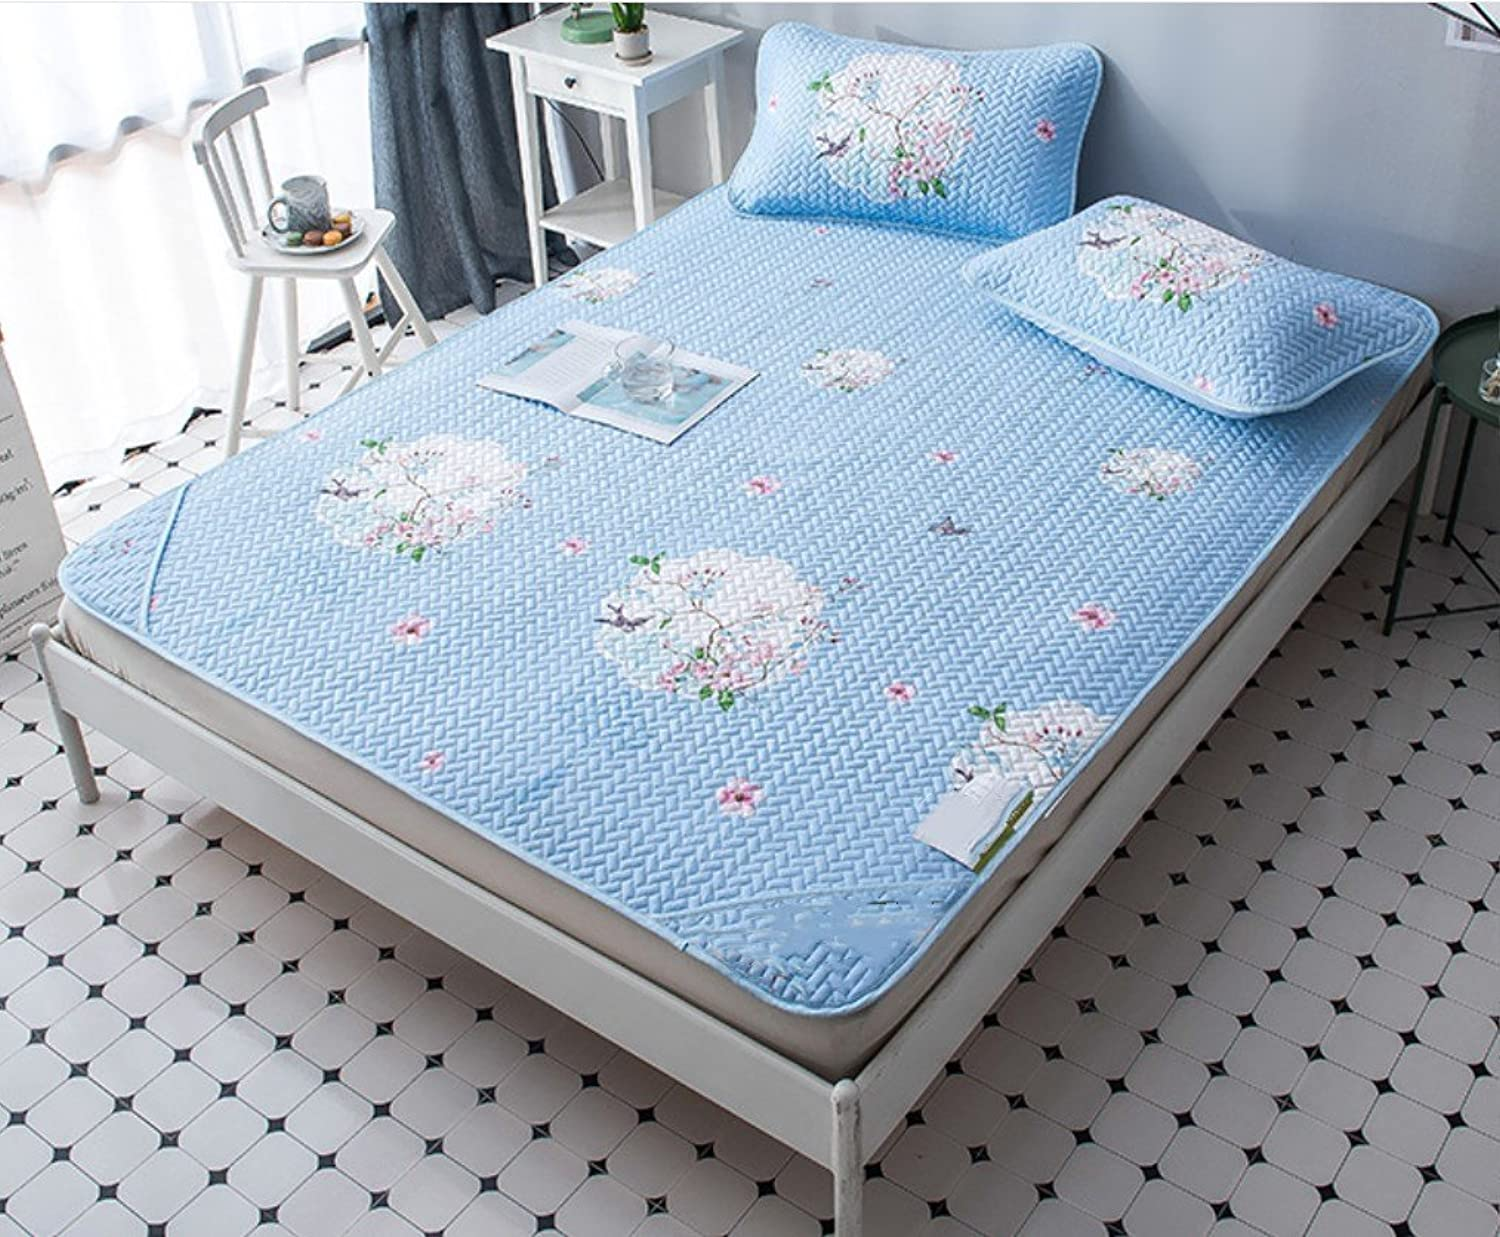 Washable Mat Tiansi Air Conditioning Soft Seat Summer 1.5 Meters Folding Mat Ice Silk Mat Three Sets ZXCV (color   bluee, Size   120  200 m)